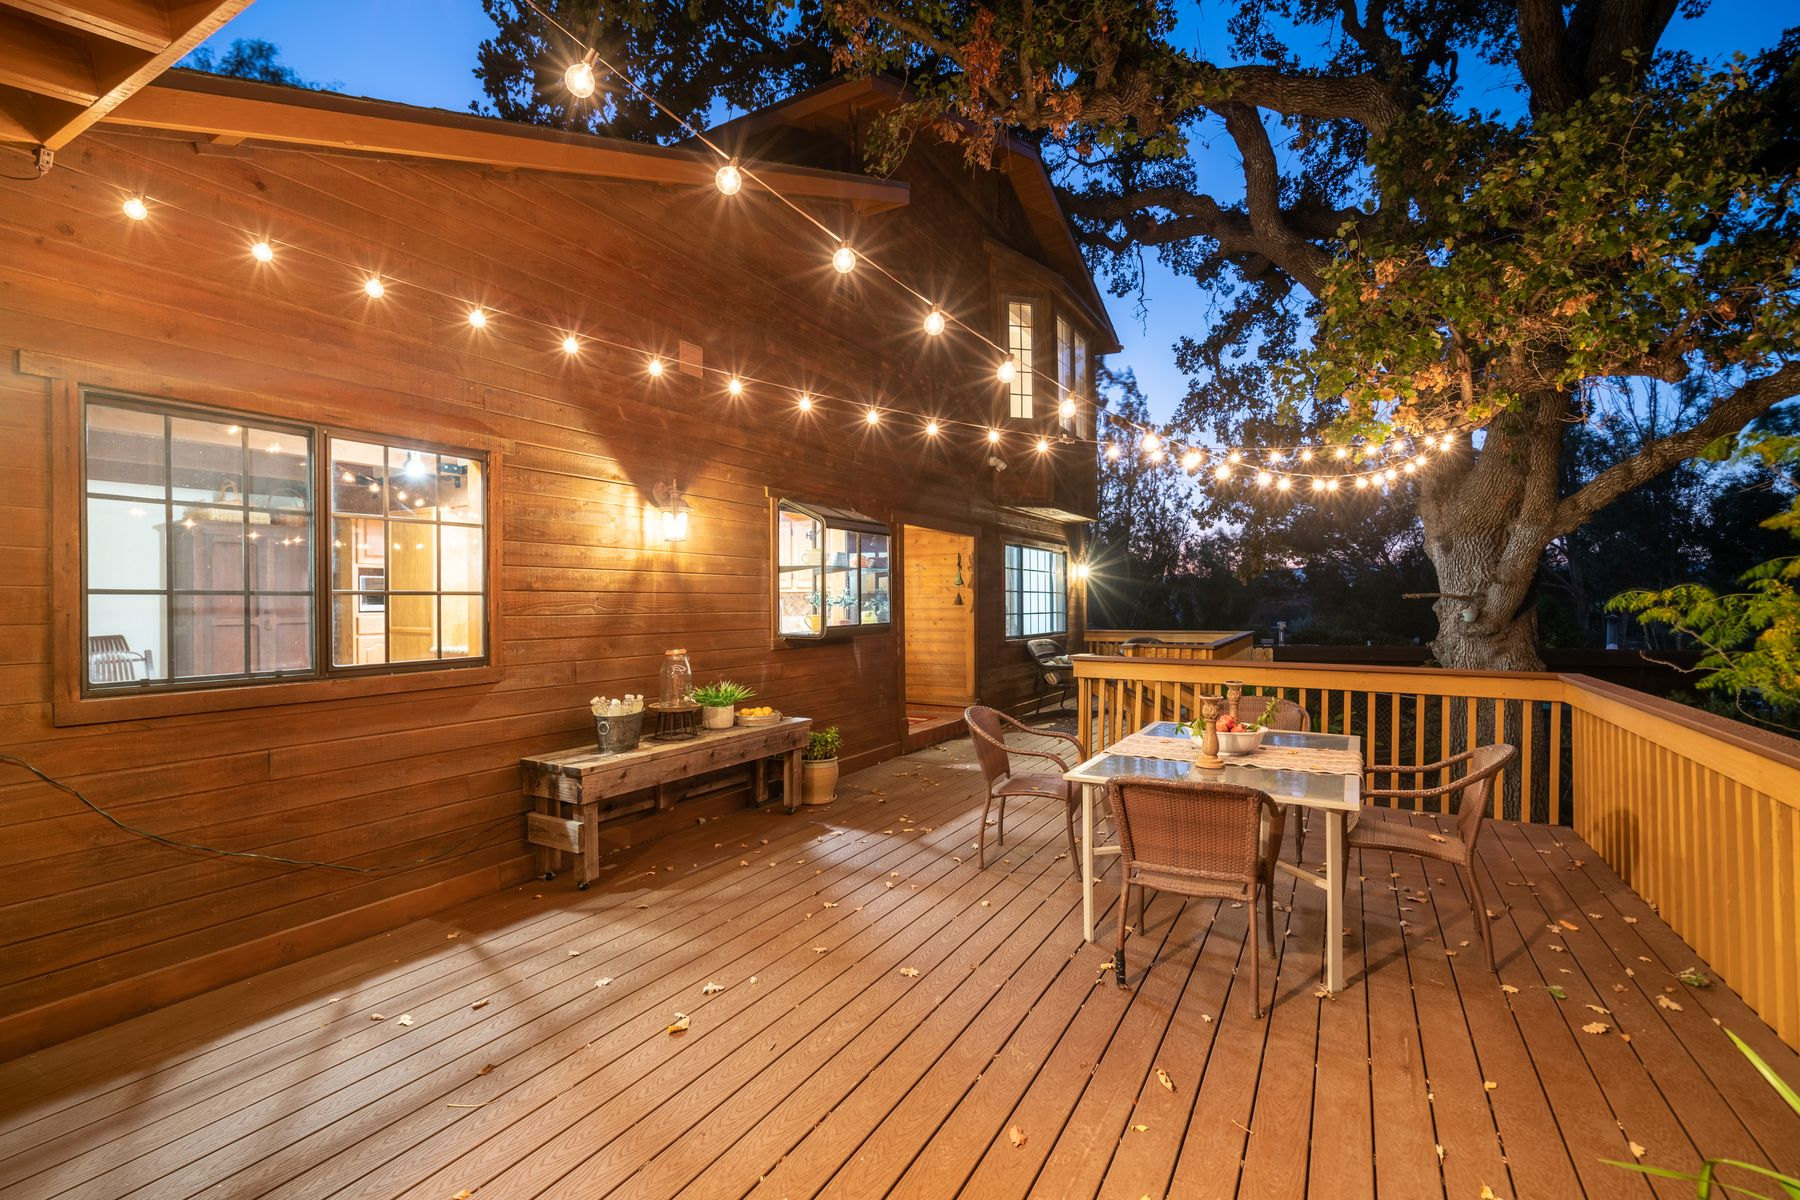 Single Family Homes for Sale at Charming, Modern Cabin in the Woods 28328 Driver Avenue Agoura Hills, California 91301 United States